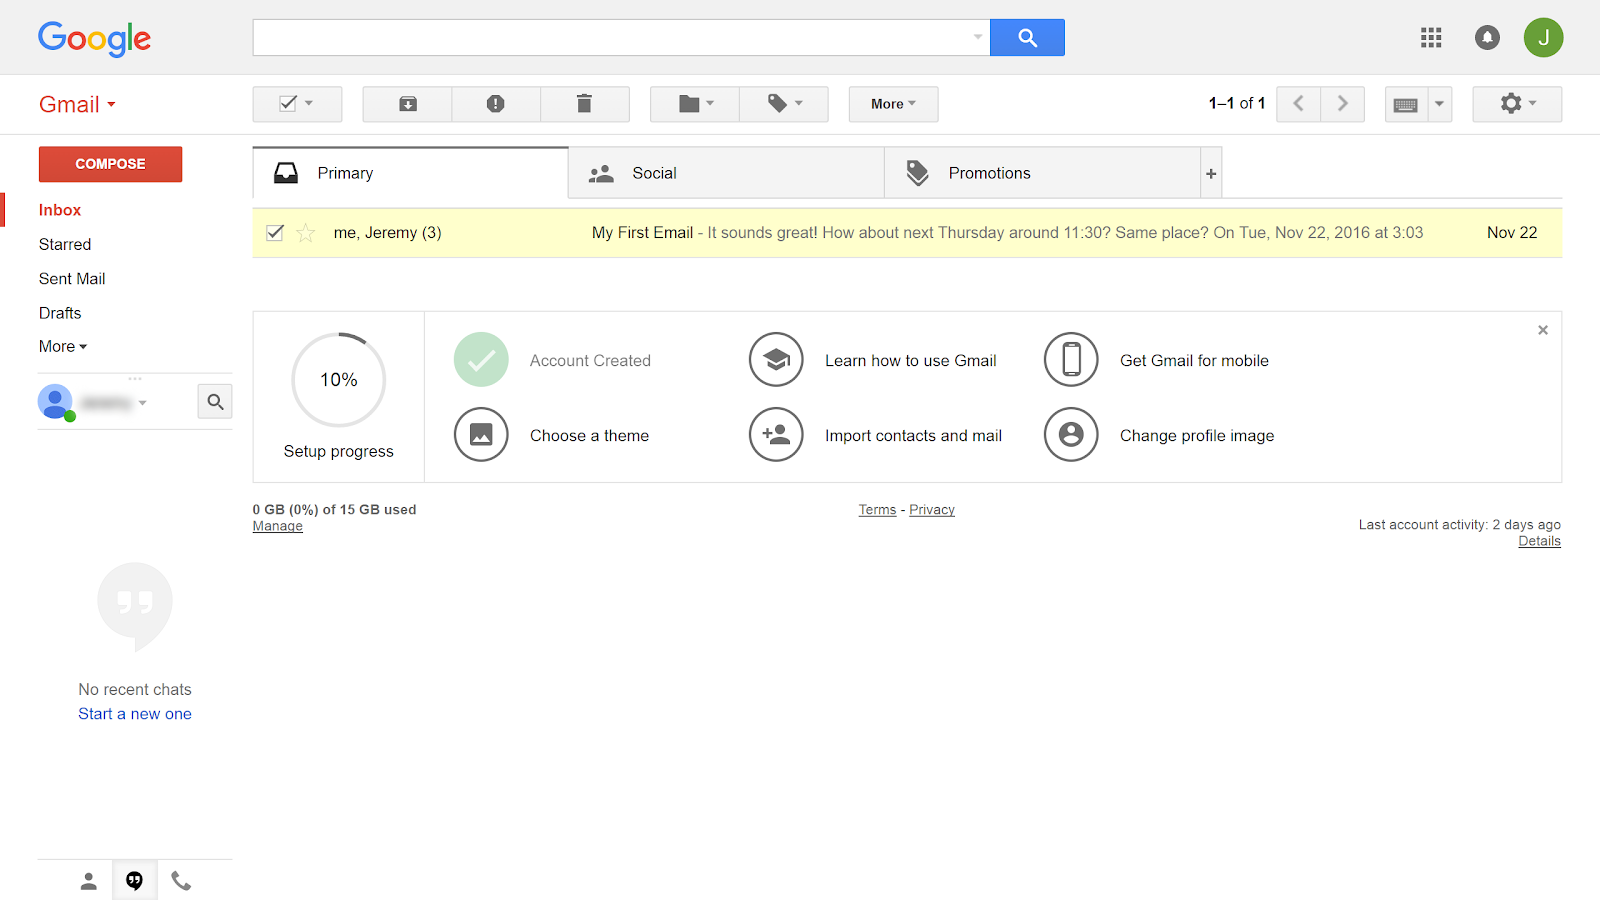 Gmail theme does not work - Google Will Let You Know That The Email You Deleted Can Be Found In Your Trash For The Next 30 Days Google Does This So Can Find